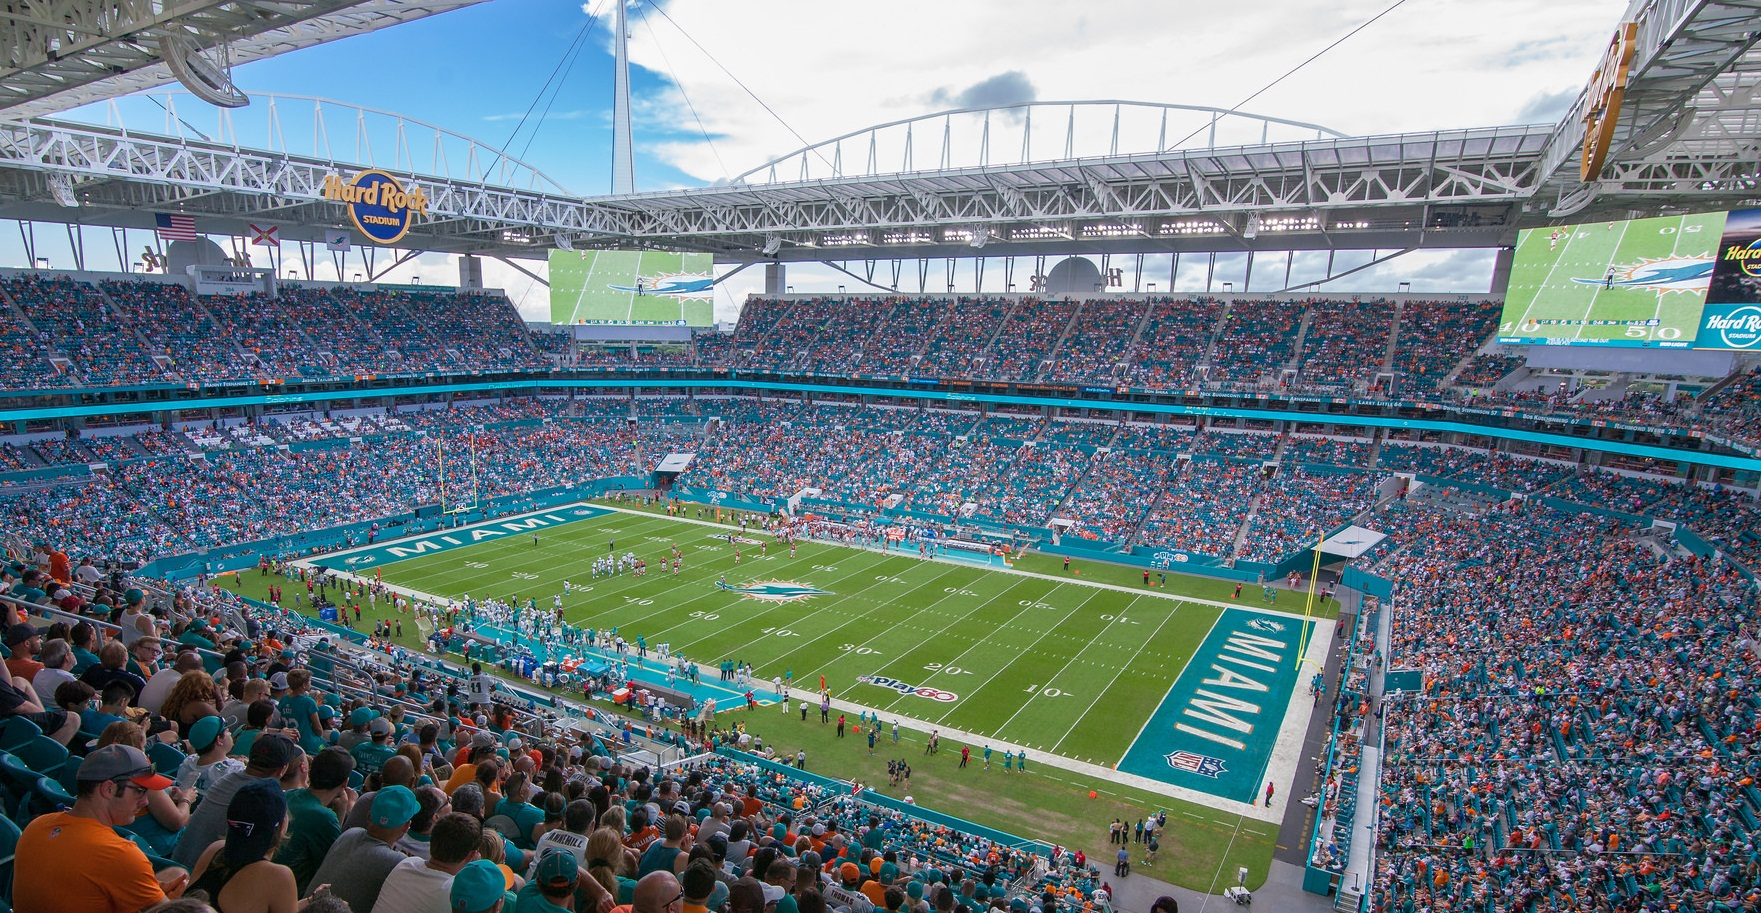 Hard Rock Stadium Miami Dolphins Football Stadium Stadiums Of Pro Football